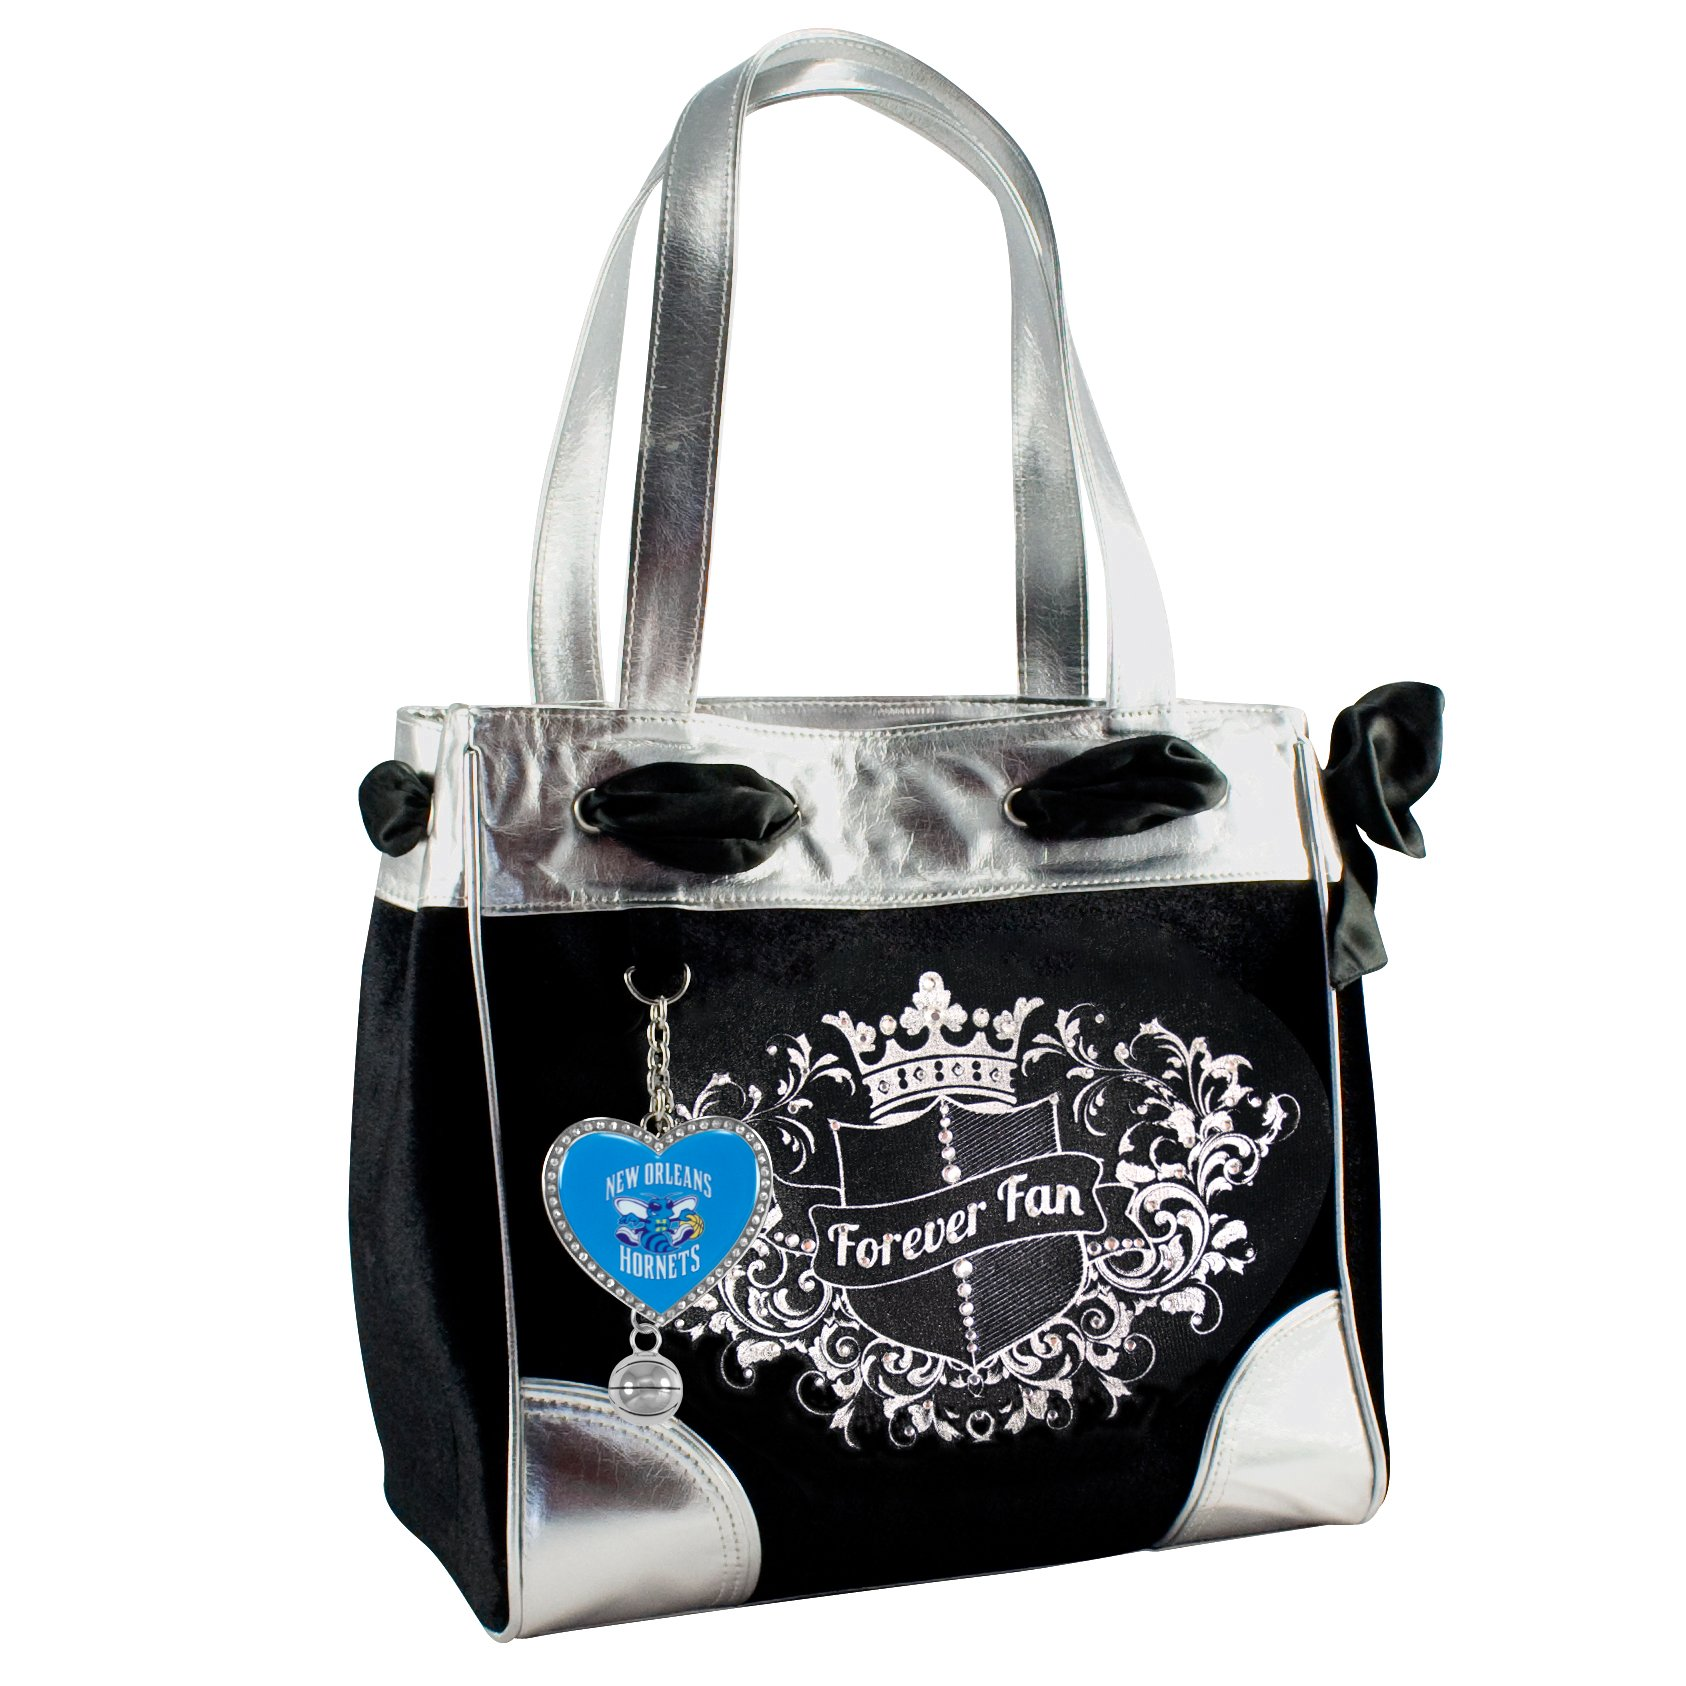 NBA New Orlean Hornets Sport Luxe Fan Tote